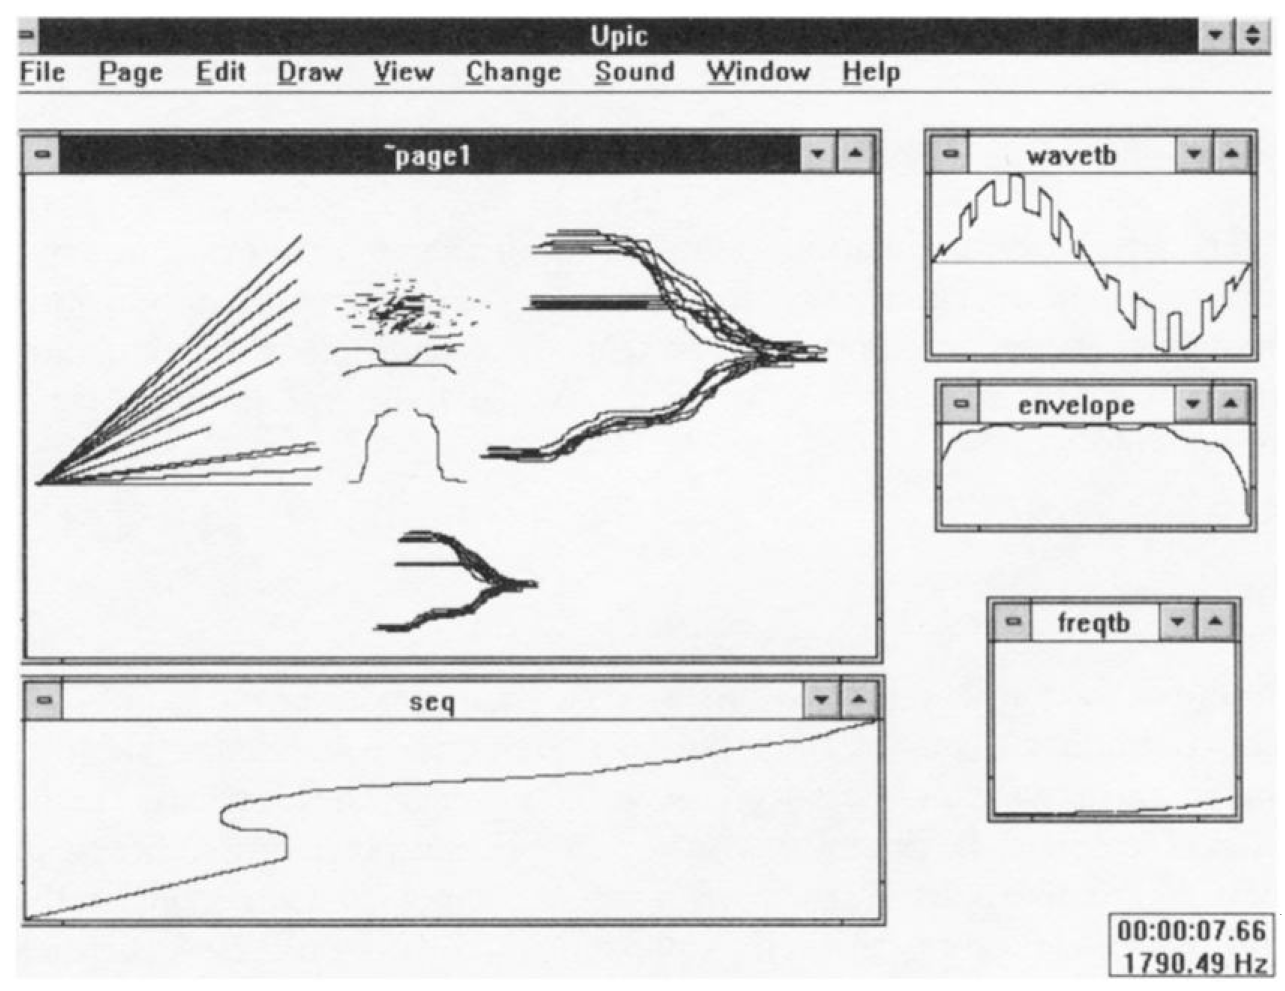 upic-system-by-iannis-xenakis-screenshot